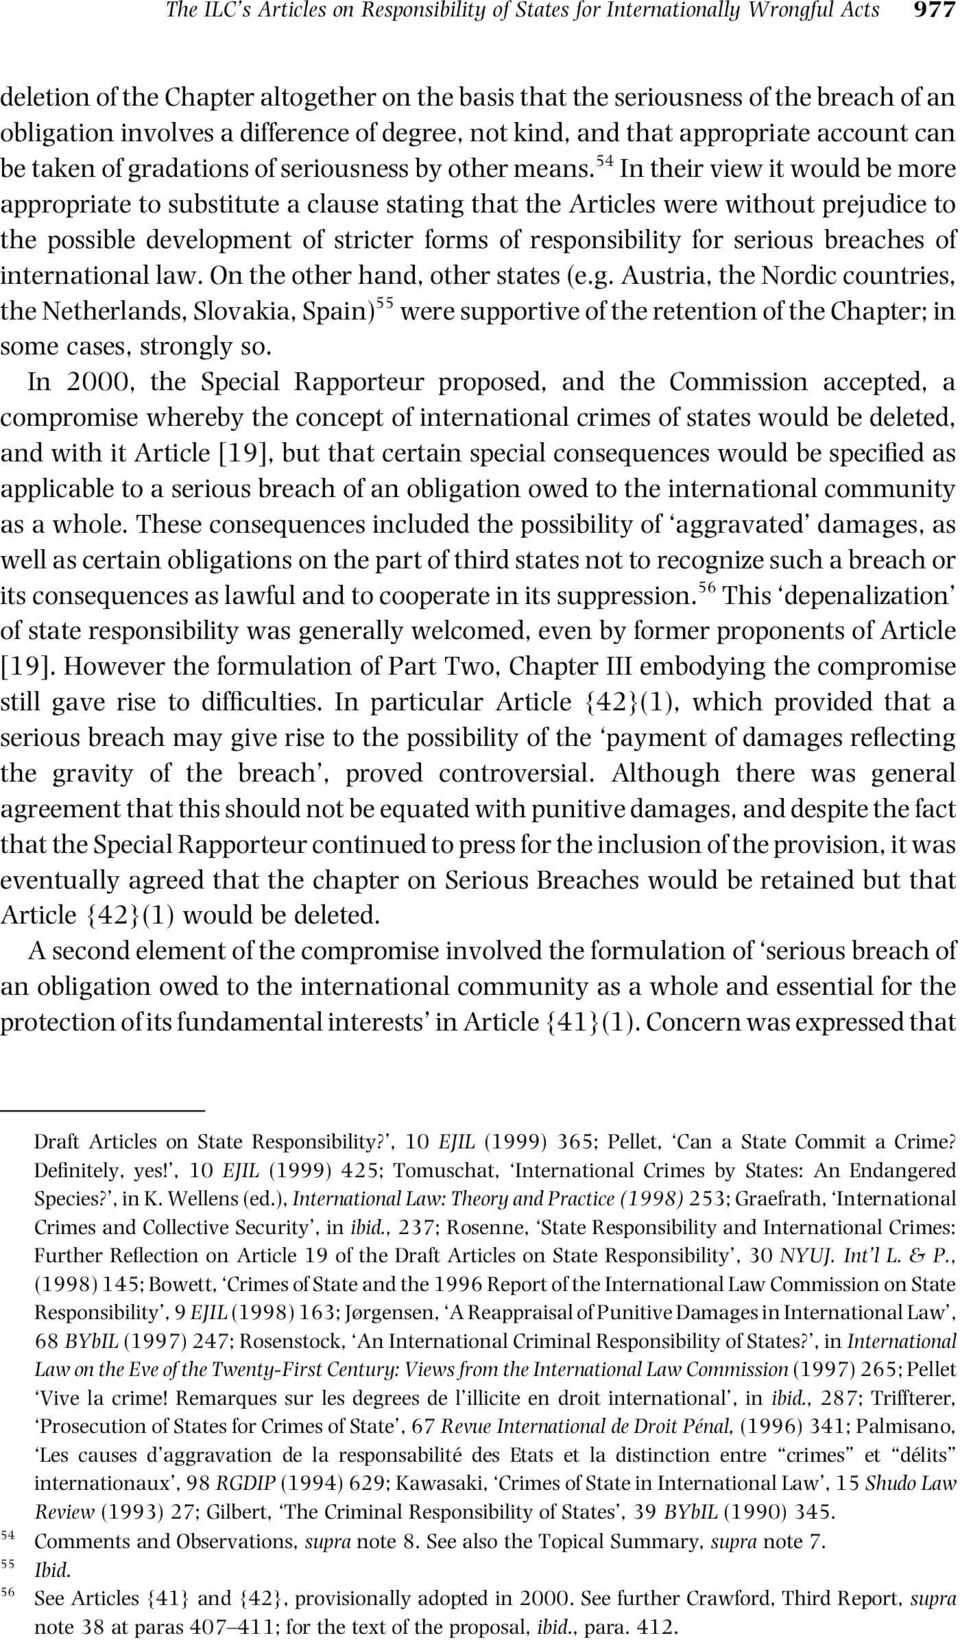 international legal requirement compensation ilc reports concerning talk about responsibility